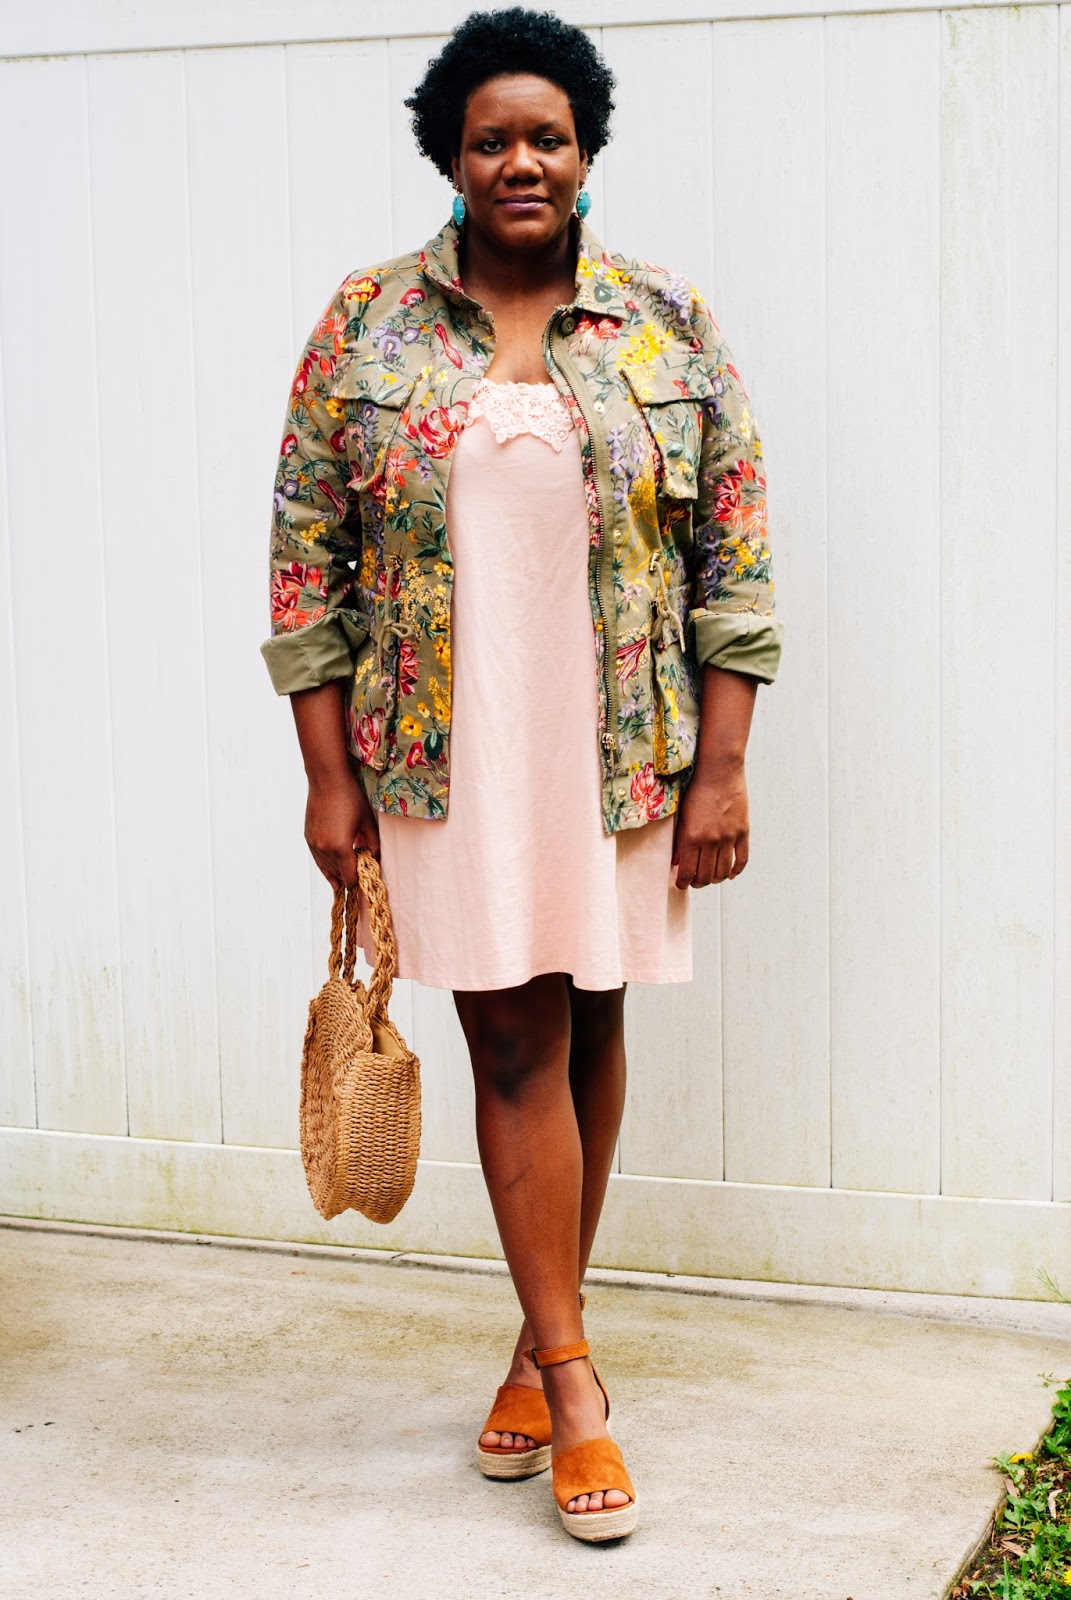 Who doesn't love a versatile statement piece? This floral jacket from H&M is my new favorite piece in my closet. It instantly makes any outfit feel like spring while being heavy enough to keep me warm on those days where it feels more like winter is still hanging around. I love it so much that I want to wear it all the time!